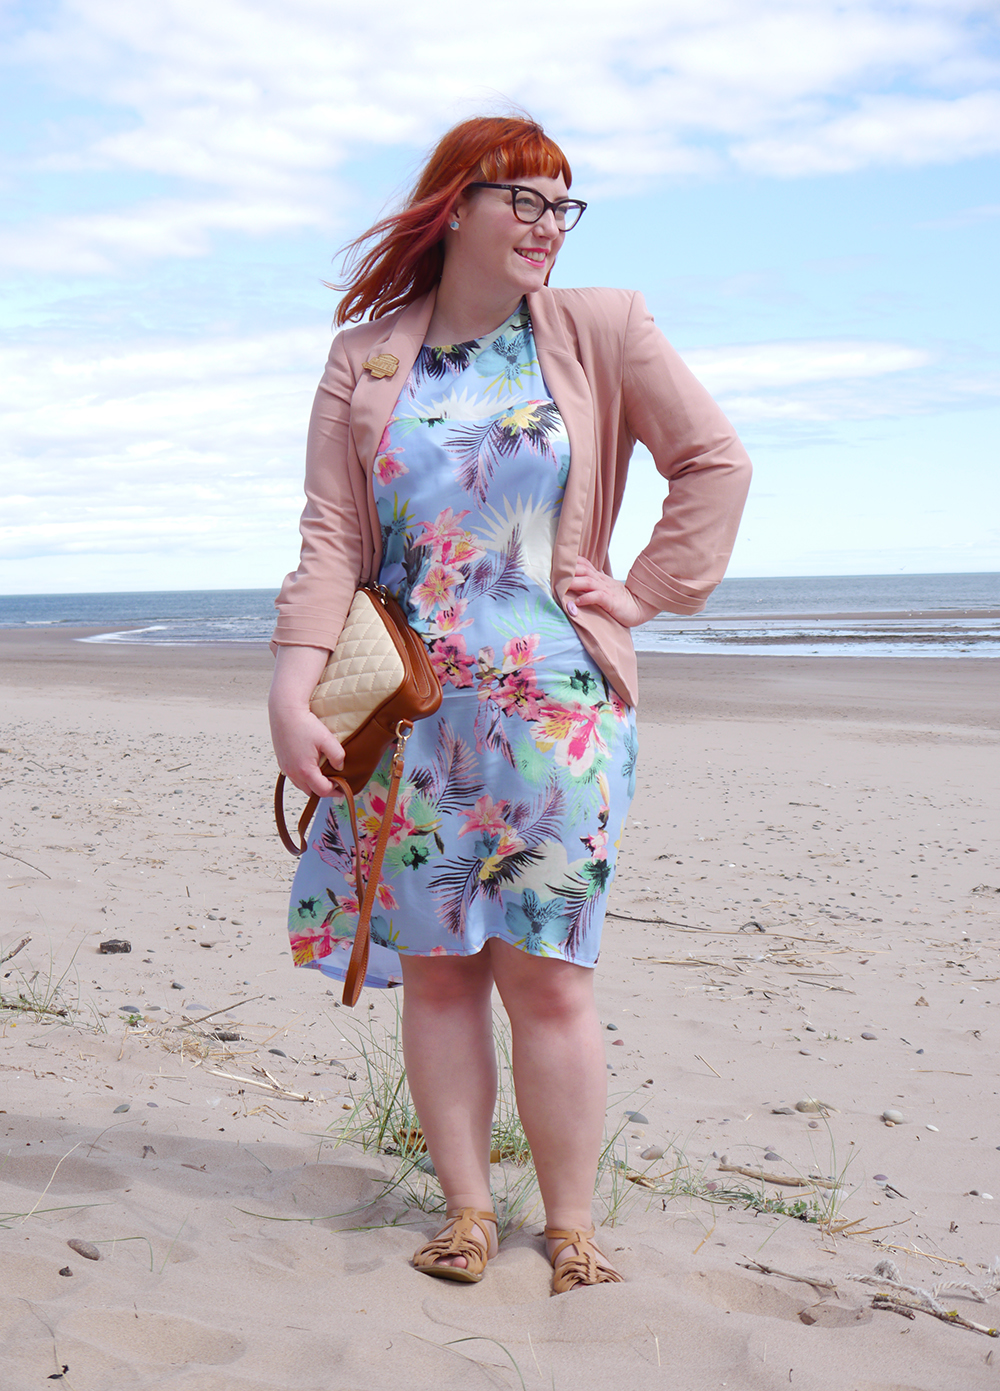 summer style, tropical style, beach style, DIY dress, dressmaking, Styled by Helen: Tropical, red head, ginger, Topshop sandals, pink blazer, Tom Pigeon earrings, The Whitepepper bread bag, pink balzer, Kate Rowland, wooden jewellery